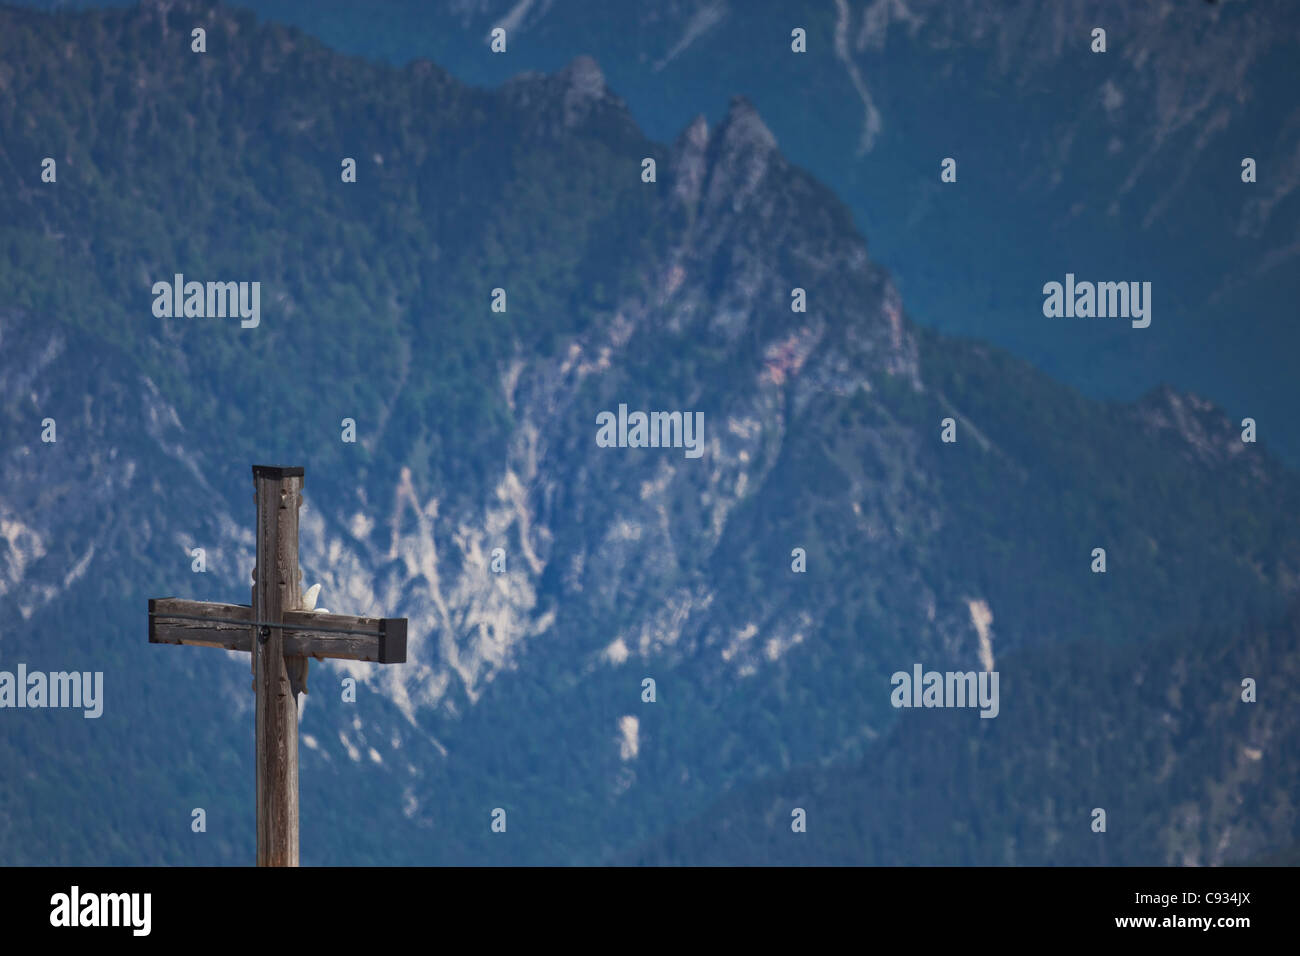 Memorial cross and Edelweiss flower motif,  location of Hitler's 'Eagle's Nest' residence, Obersalzburg, - Stock Image